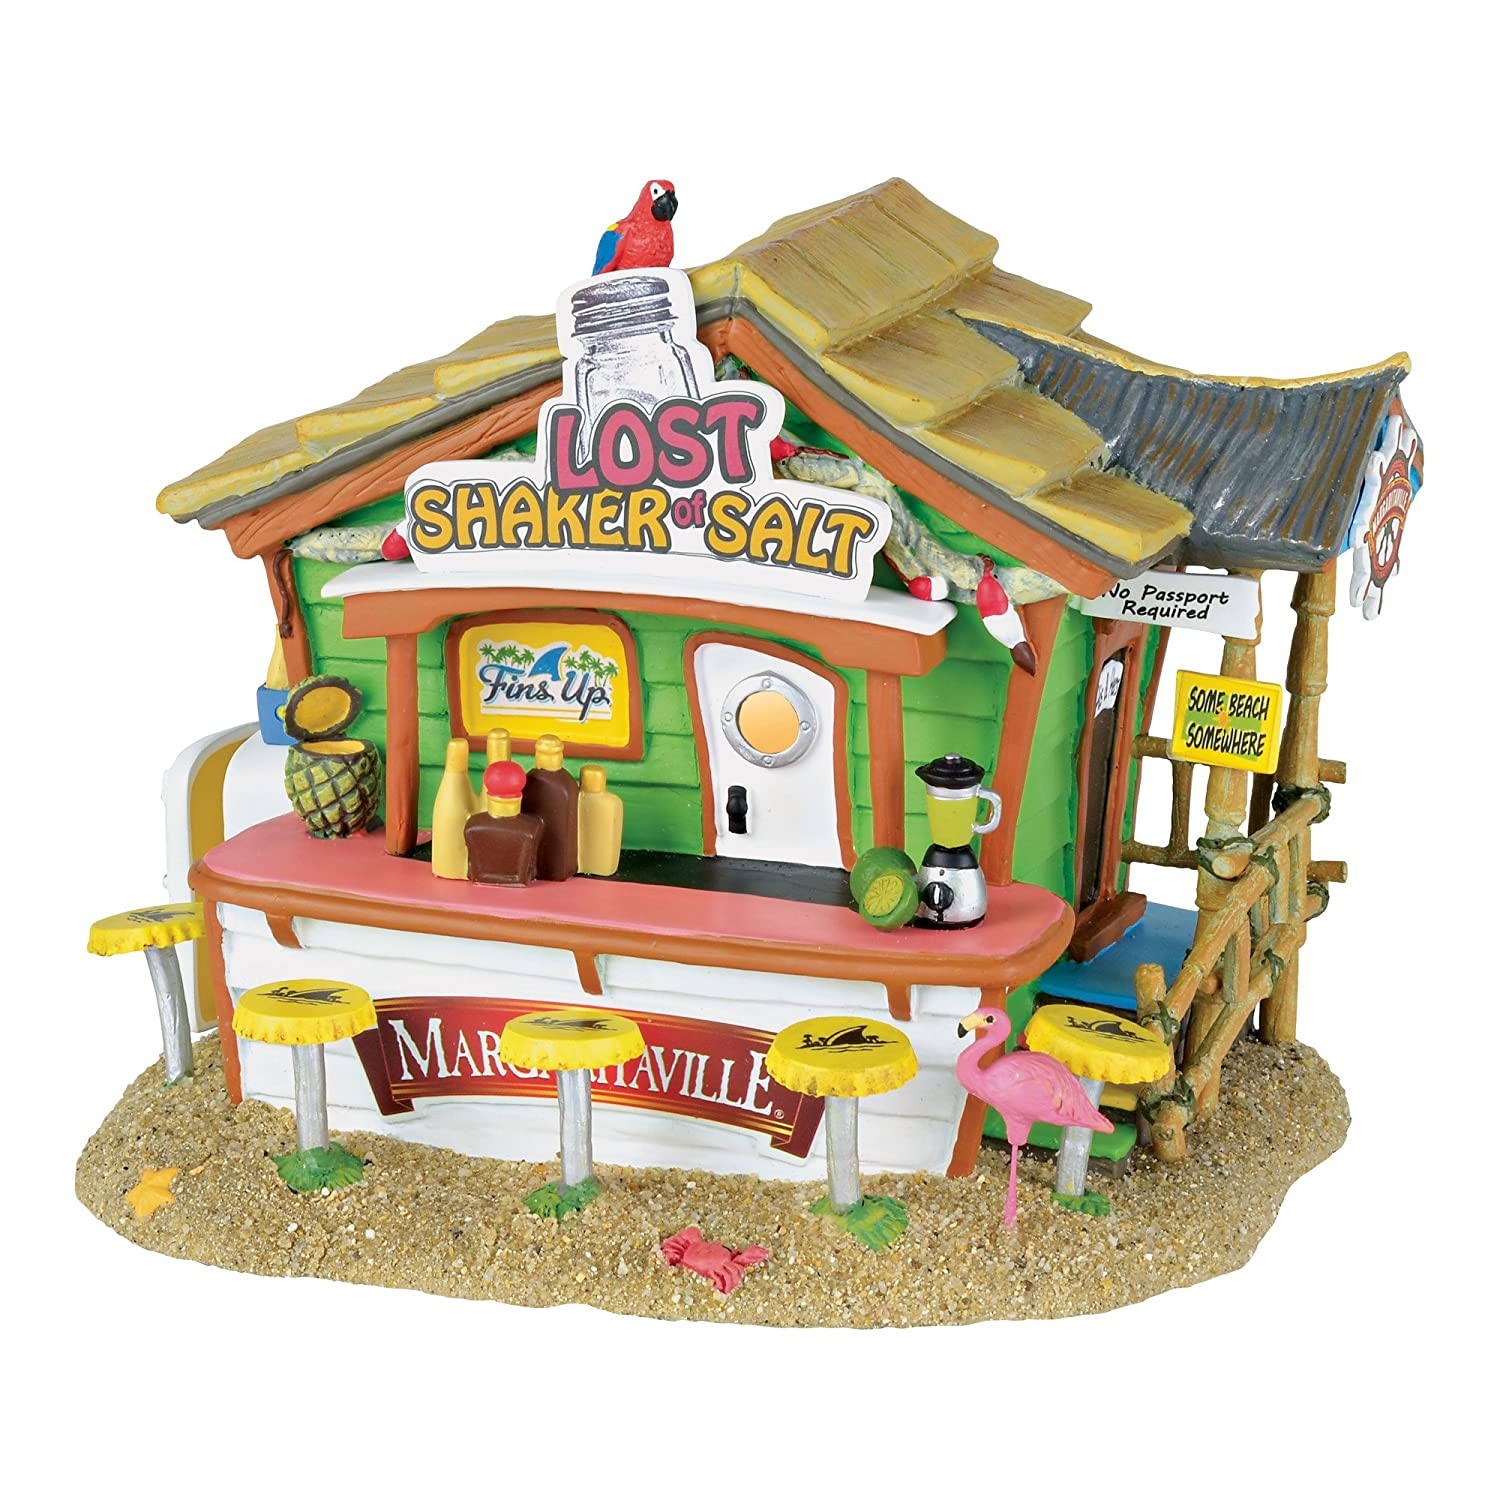 Department 56 Margaritaville Lost Shaker of Salt Bar Musical Village Lit Building, Multicolored 4058489